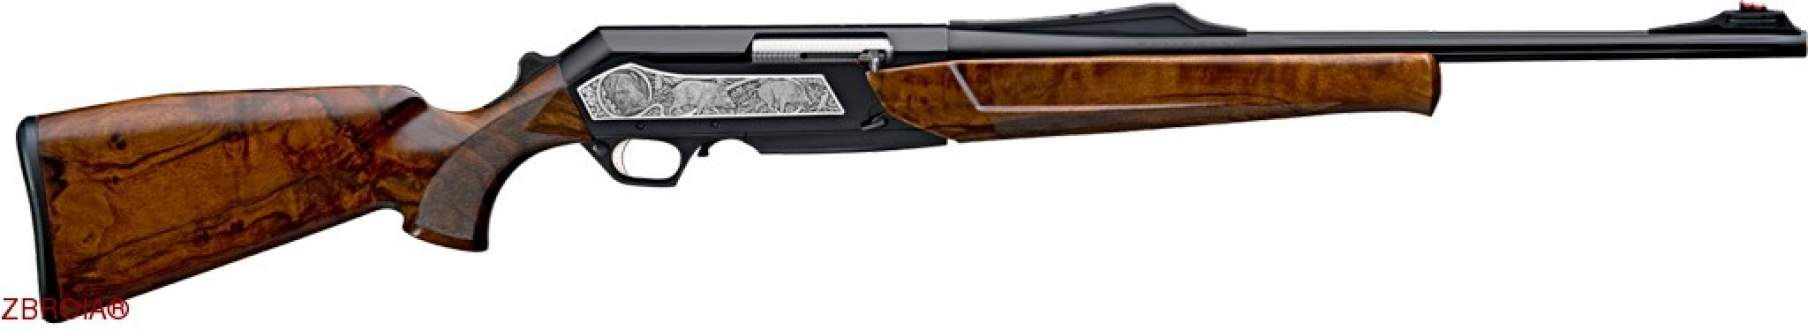 Карабин Browning BAR Zenith Big Game Fluted HC кал. 30-06